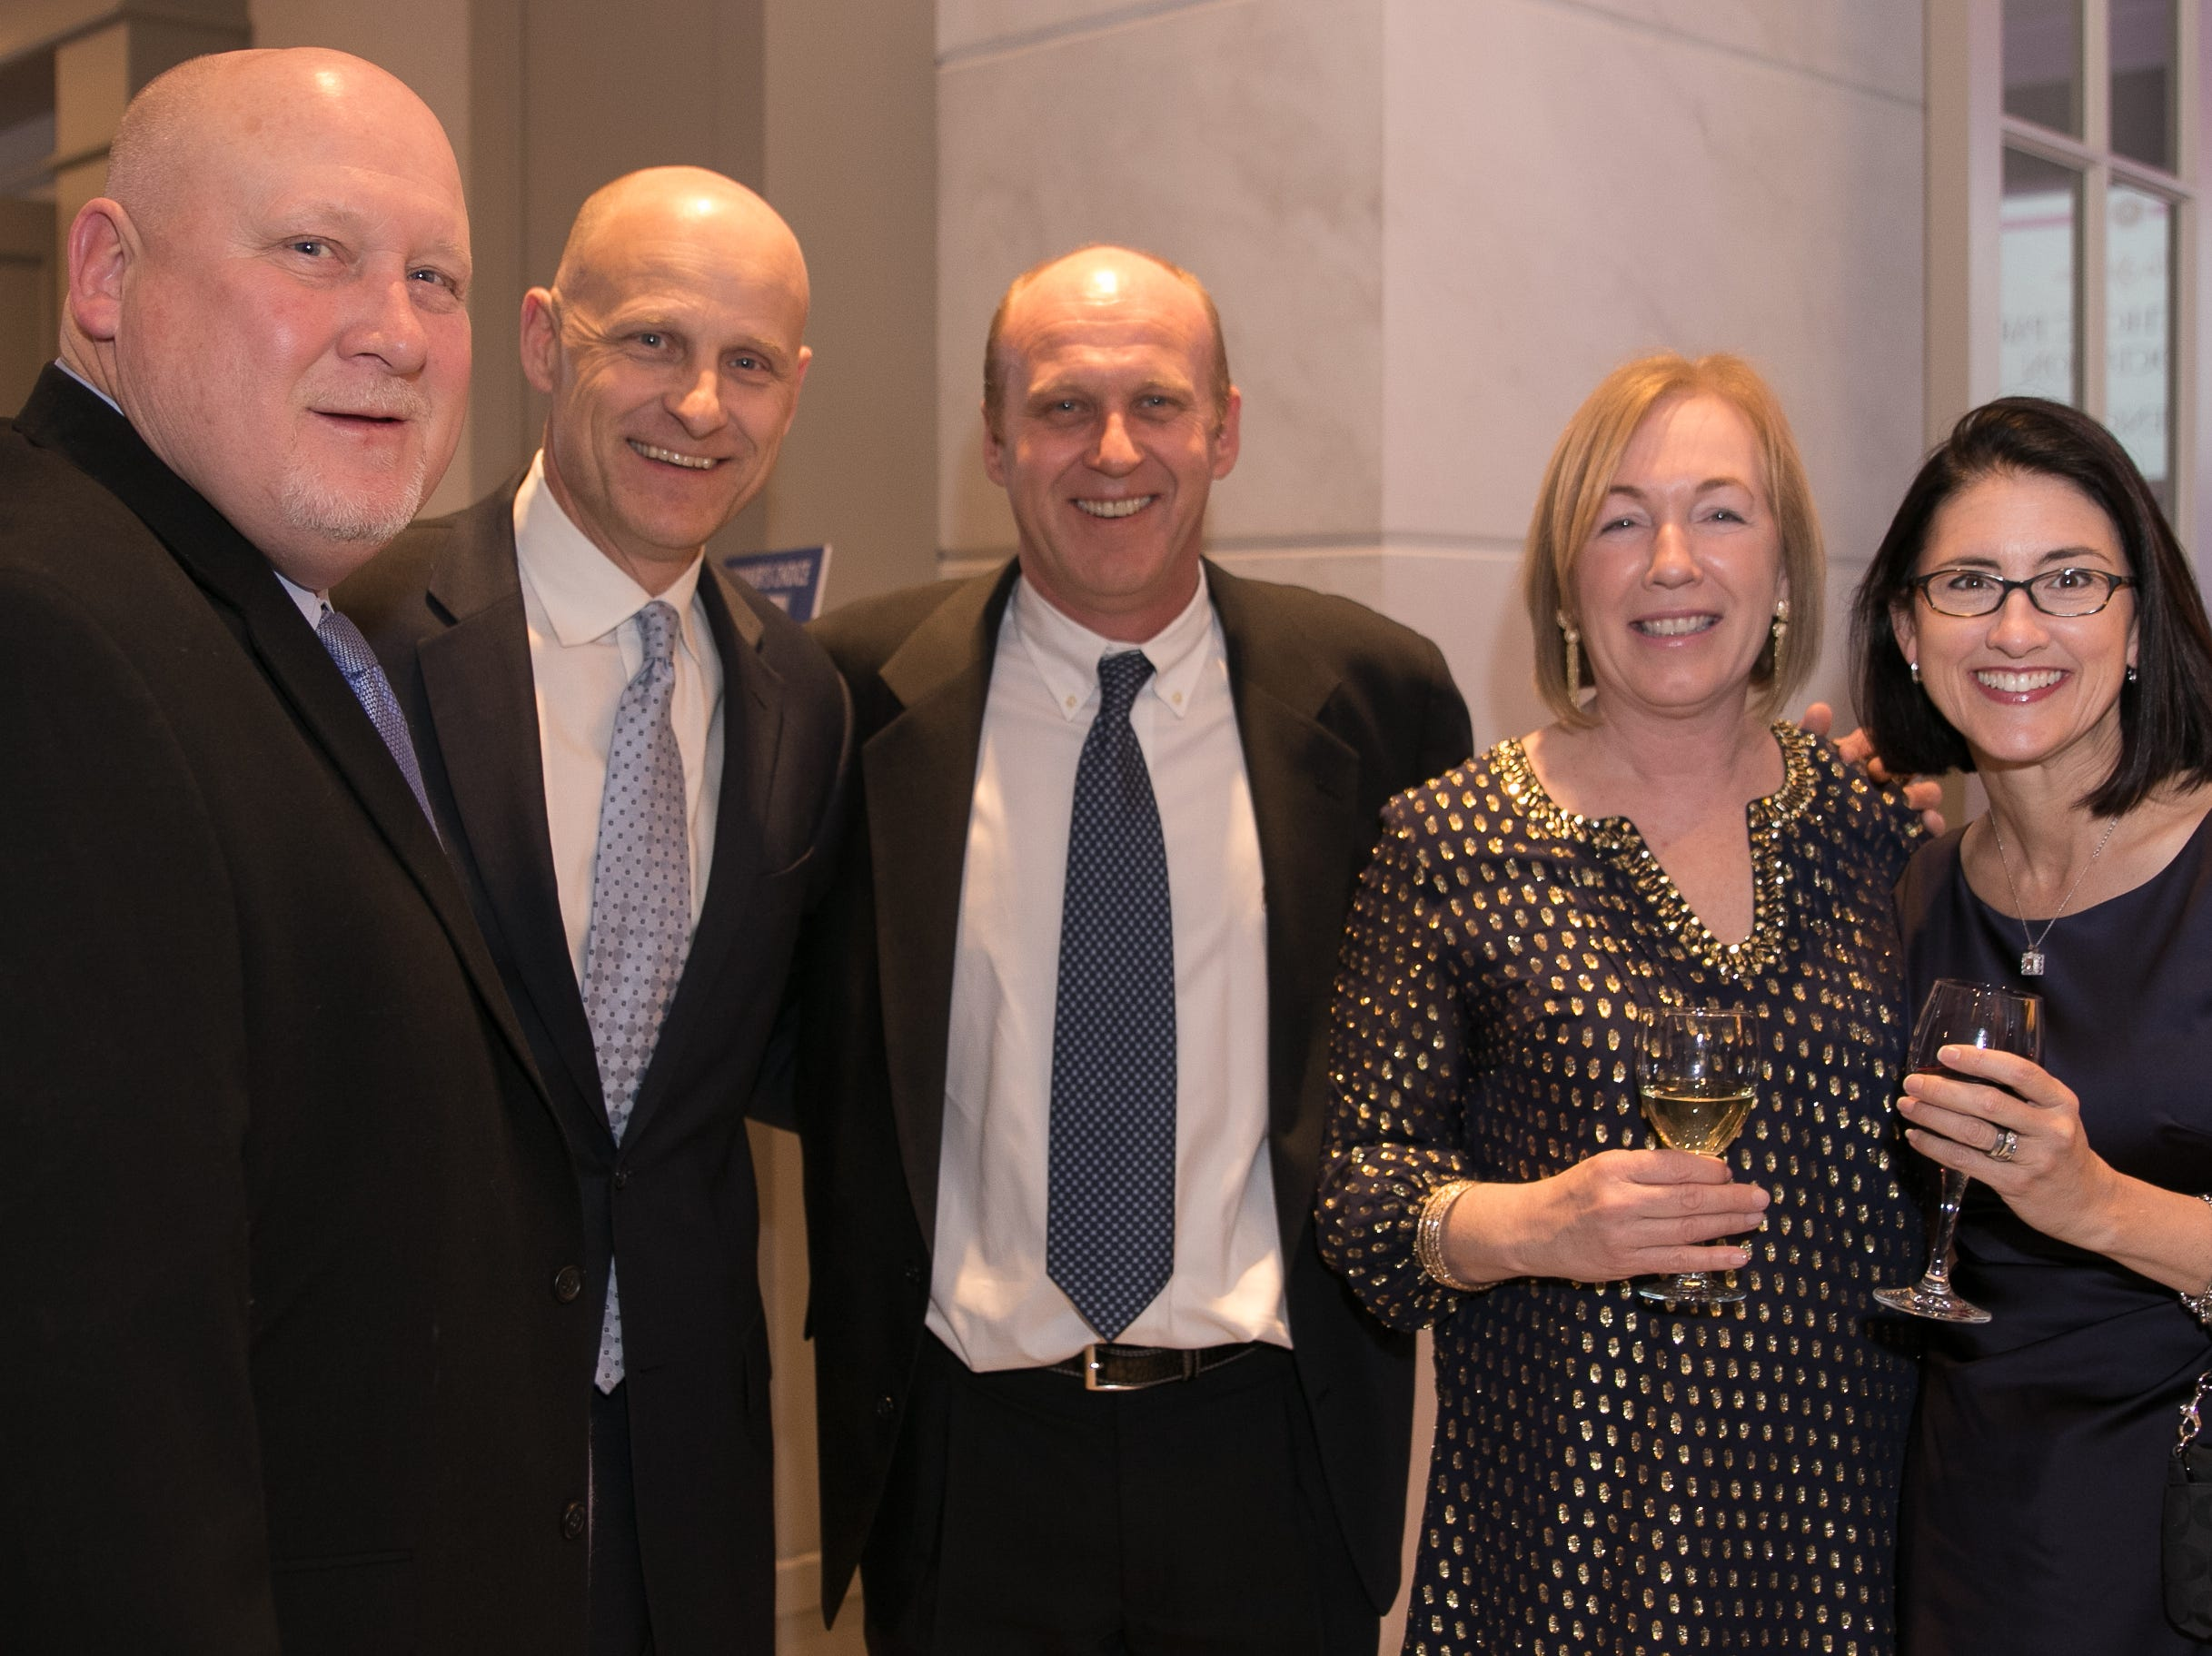 Bill McGovern, Rob McGovern, Dave McGovern, Colleen McGovern, Jenn Hill. Academy of The Holy Angels held their 22nd annual Angelic Evening at Edgewood Country Club in RiverVale. 03/22/2019